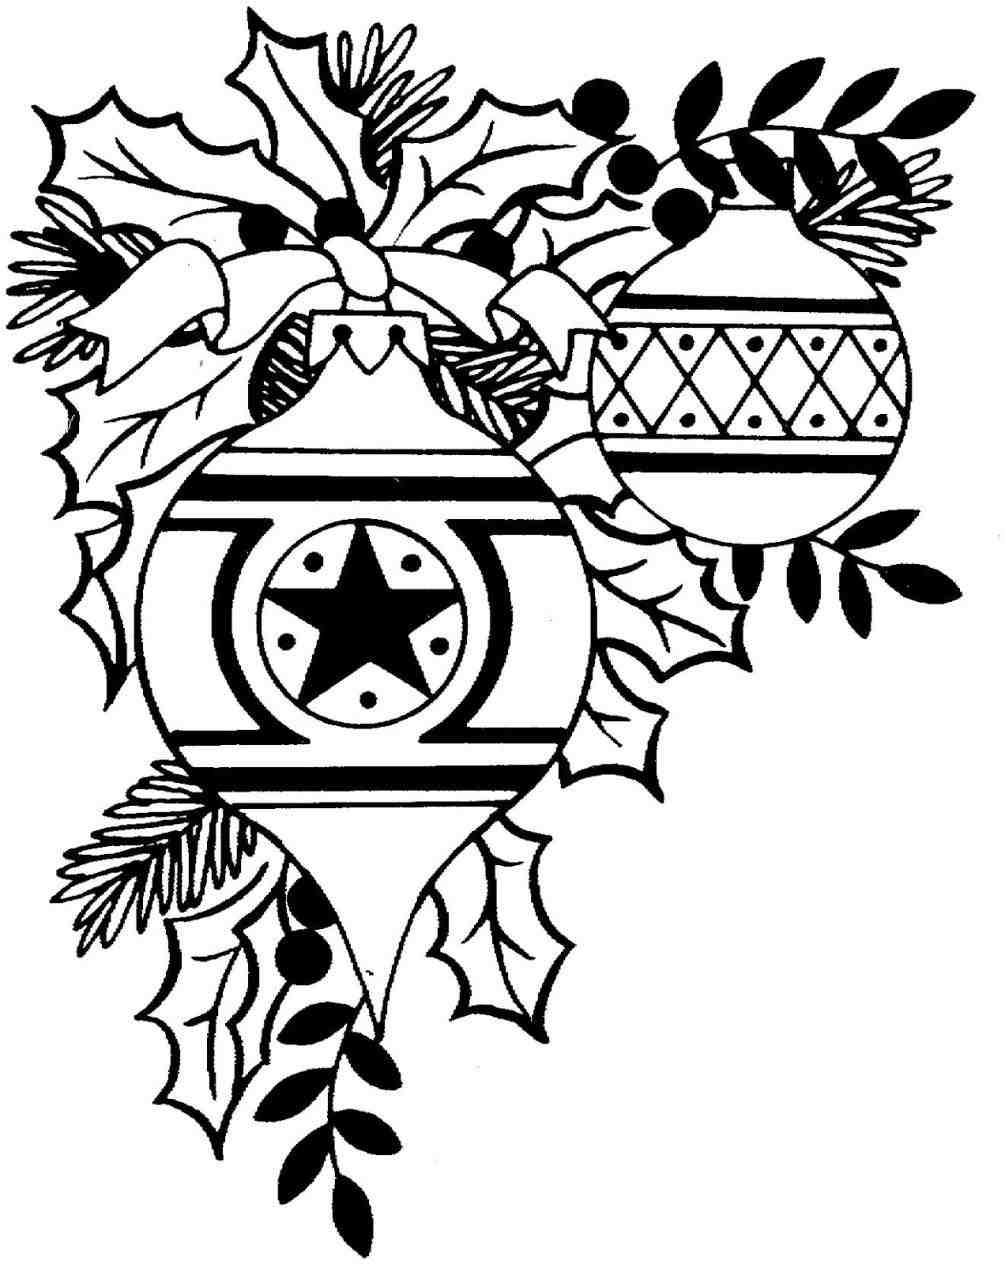 1005x1264 Christmas Bells Black And White Clipart Cheminee.website